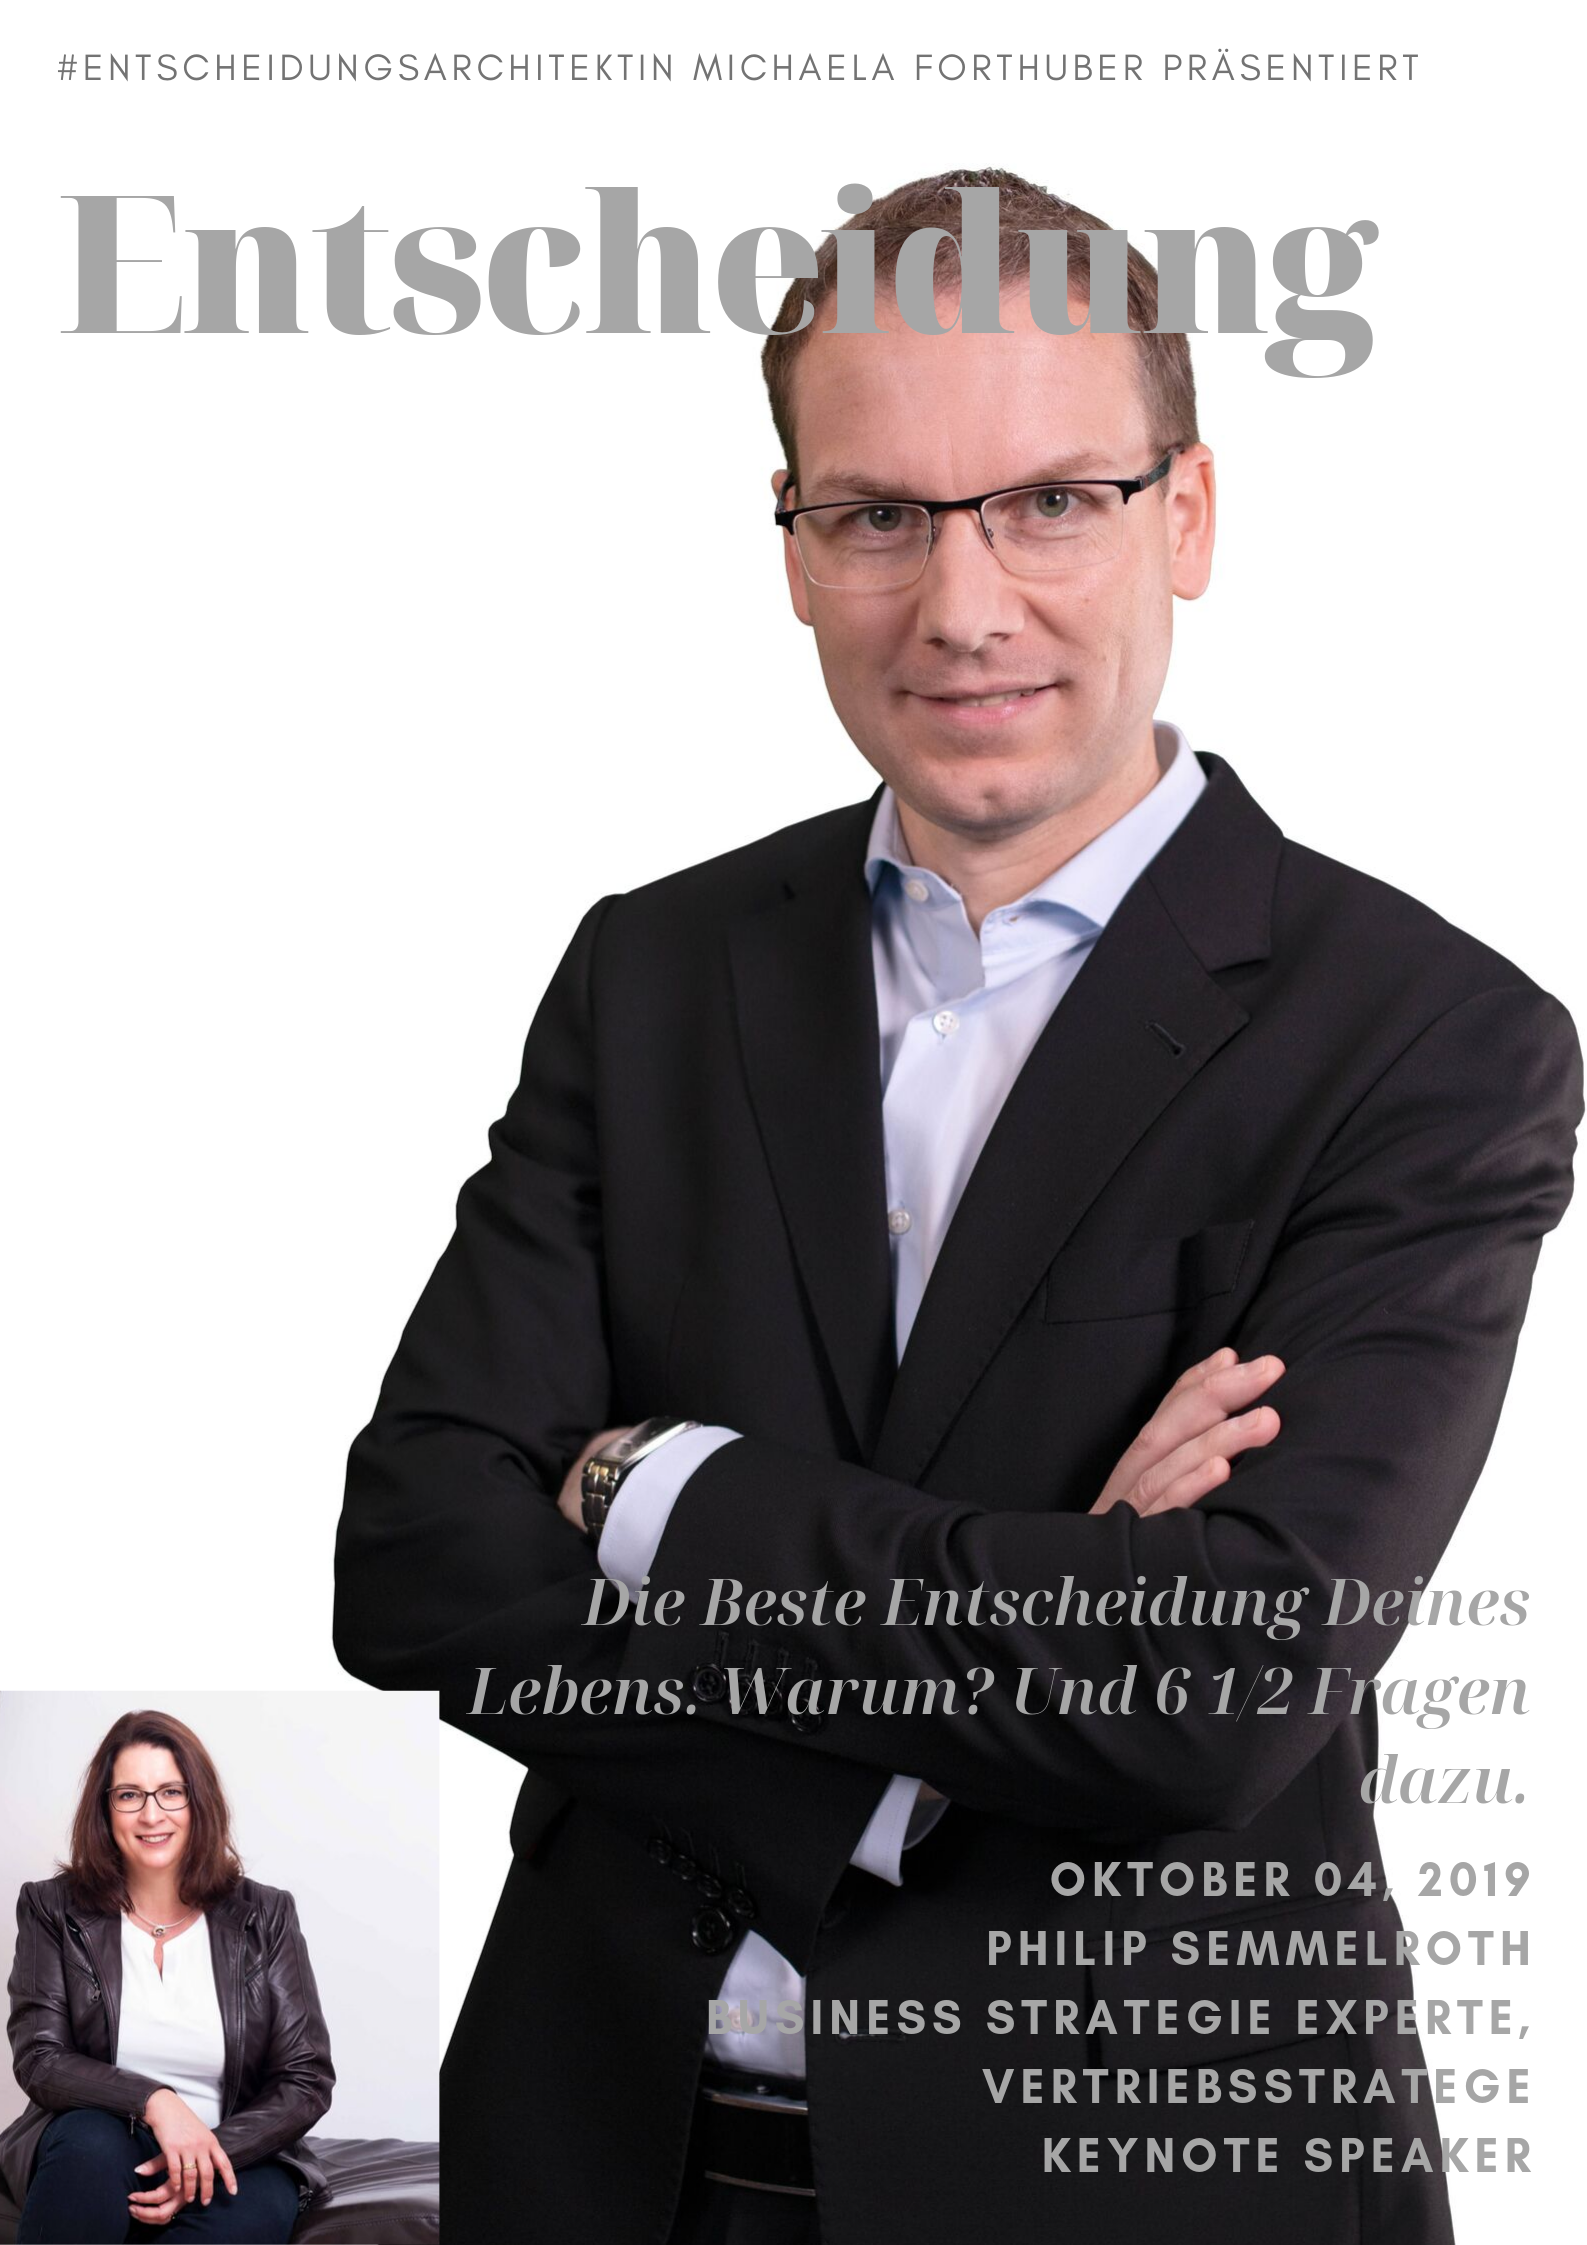 Blog Interview Philip Semmelroth Entscheidung Michaela Forthuber #Entscheidungsarchitektin